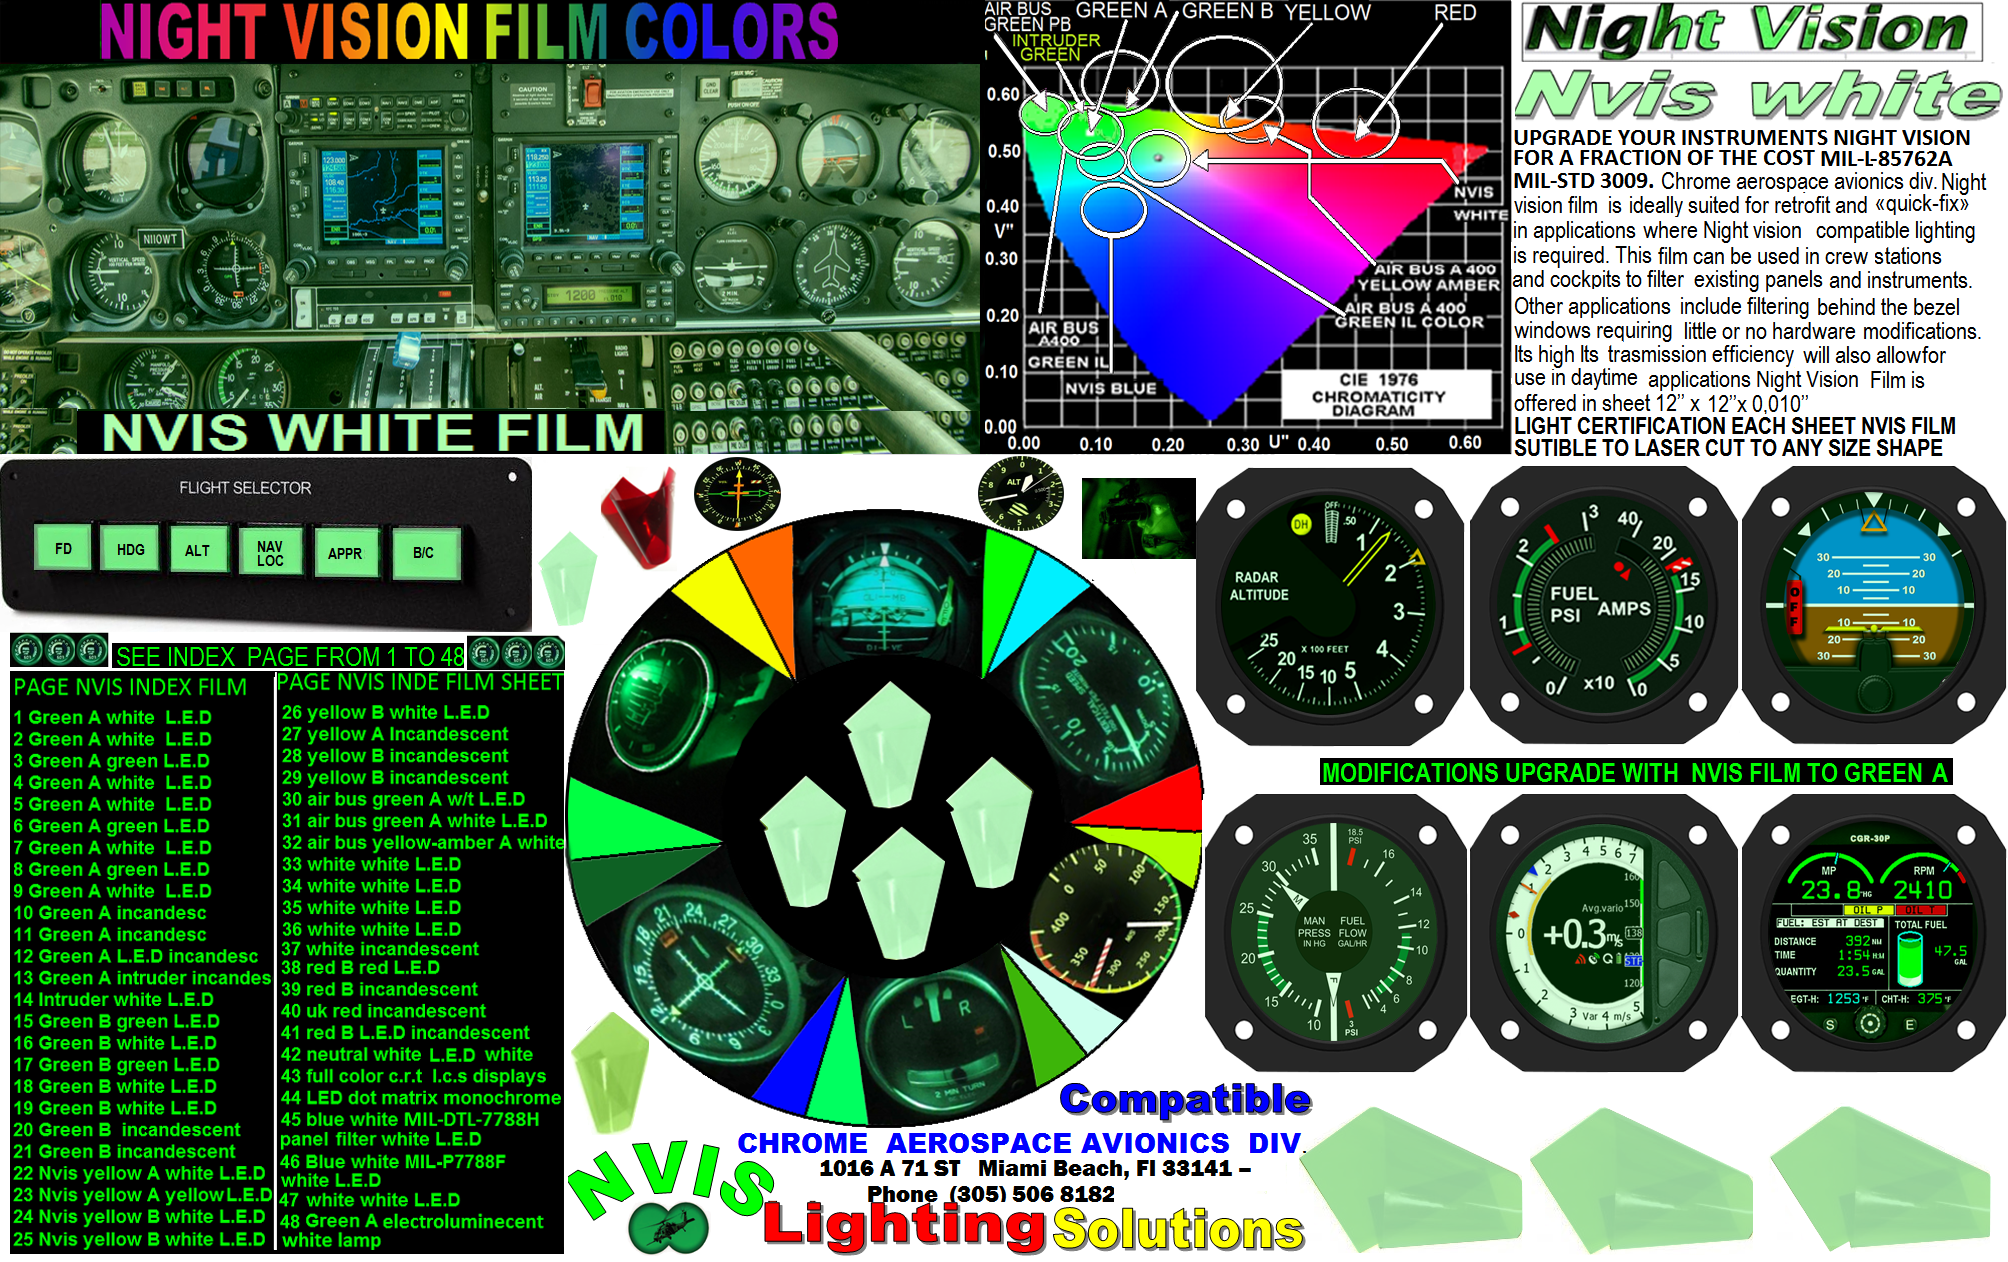 2 NVIS NVIS WHITE FILM UPGRADE CONVERSION INSTRUMENTS 330 SMD PLCC LED 955 SMD PLCC LED 955 SMD PLCC LED 955 LED 955 LED NVIS  955 LED HELICOPTERS NIGHT VISION LIGHTING   955 NVIS FILTER 955 Night Vision Imaging Systems (NVIS)  955 NVIS Aircraft Upgrades | Night Vision Goggles 955 PILOT NIGHT VISION NVIS ILLUMINATION  955 LED SWITCHES, KEYBOARDS, DIALS, AND DISPLAYS 955 COCKPIT MODIFICATION 955 NVIS compatible lights 955 NVIS filters . NVG lighting 955 NVG lighting control panel customized 955 SMD LED  955 NVIS compatible lights  955 NVIS compatible lights CHIP  955 SMD LED NVIS   955 SMD LED NIGHT VISION  955 SMD PLCC LED AVIONICS 955 AVIONICS NIGHT VISION LIGHTING 955 AVIONICS MODIFICATIONS TO NIGHT VISION   955 LED AVIONICS UPGRADES TO NVIS 955 LED NVIS GREEN A 955 IMPACT SOLAR FILTER NVIS 955 LED NVIS GREEN B   955 LED NVIS WHITE  955 LED NVIS RED  955 LED AIRBUS A 400 GREEN 955-001 SMD PLCC LED 955-001 LED   955-001 LED NVIS  955-001 LED HELICOPTERS NIGHT VISION LIGHTING 955-001 NVIS FILTER 955-001 Night Vision Imaging Systems (NVIS) 955-001 PILOT NIGHT VISION NVIS ILLUMINATION  955-001 NVIS Aircraft Upgrades | Night Vision Goggles  955-001 LED SWITCHES, KEYBOARDS, DIALS, AND DISPLAYS 955-001 COCKPIT MODIFICATION  955-001 NVIS compatible lights    955-001 NVIS filters . NVG lighting  955-001 NVG lighting control panel customized   955-001 SMD LED 955-001 NVIS compatible lights  955-001 NVIS compatible lights CHIP 955-001 SMD LED NVIS 955-001 SMD LED NIGHT VISION 955-001 SMD PLCC LED AVIONICS 955-001 AVIONICS NIGHT VISION LIGHTING 955-001 AVIONICS MODIFICATIONS TO NIGHT VISION 955-001 LED AVIONICS UPGRADES TO NVIS 955-001 LED NVIS GREEN A 955-001 IMPACT SOLAR FILTER NVIS 955-001 LED NVIS GREEN B 955-001 LED NVIS WHITE 955-001 LED NVIS RED 955-001 LED AIRBUS A 400 GREEN  670 SMD LED 670 NVG lighting control panel customized  670 NVIS filters . NVG lighting